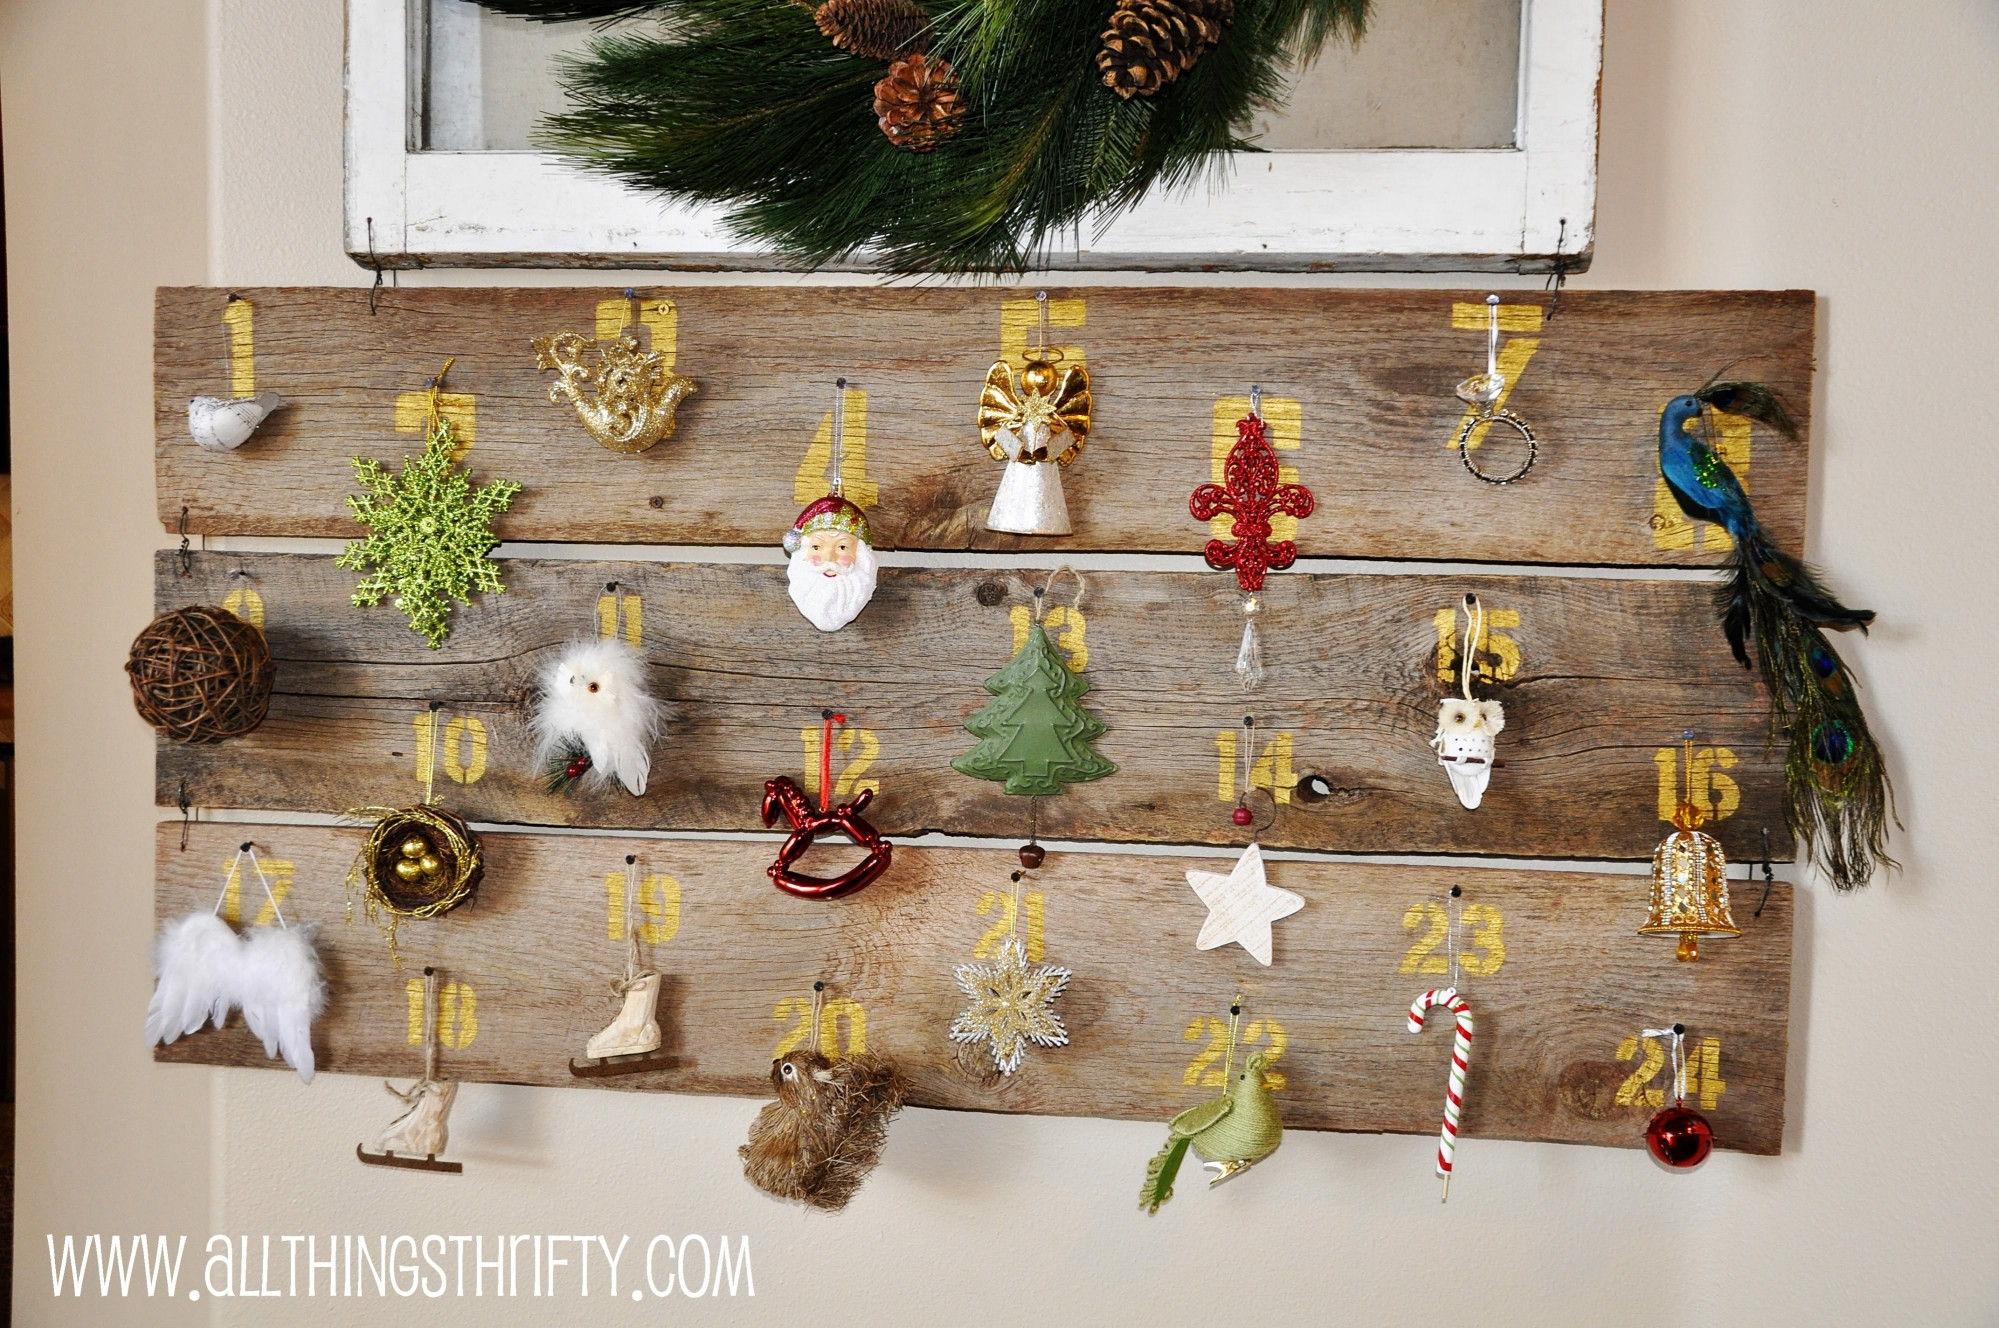 Unusual Christmas Decorations Lovely Unique Christmas Decorations Ideas 20 Christmas Tree Diy Of Delightful 42 Pictures Unusual Christmas Decorations